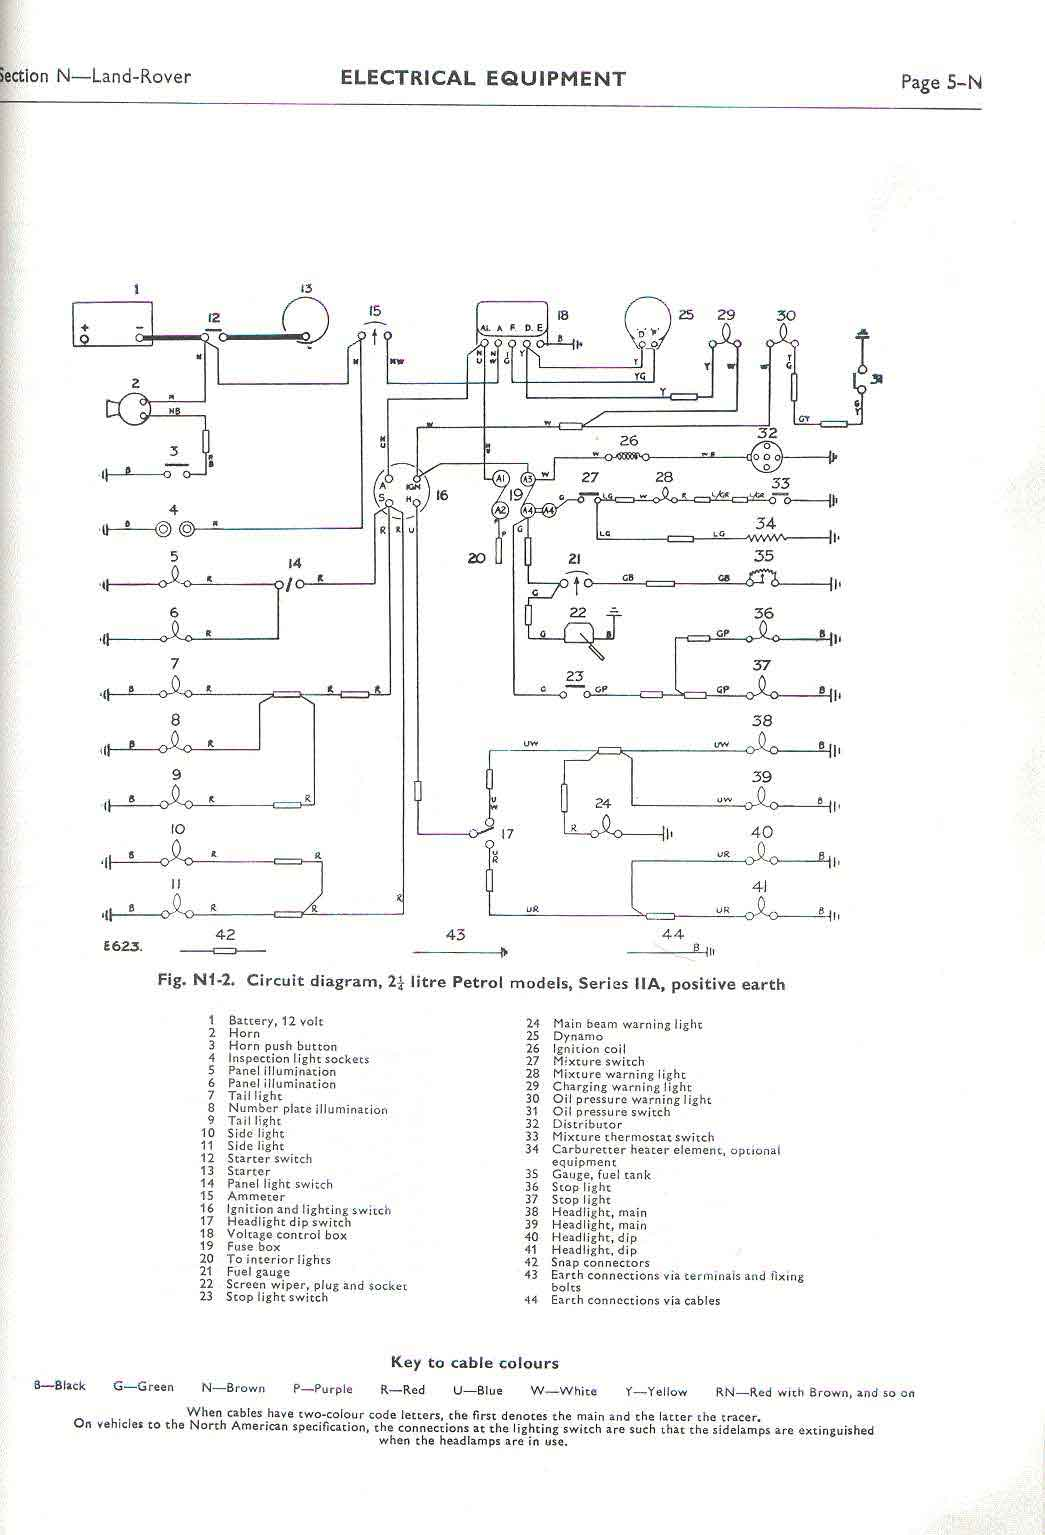 SIIA+VE series wiring diagrams series wiring diagrams instruction Land Rover Series IIA 109 at creativeand.co